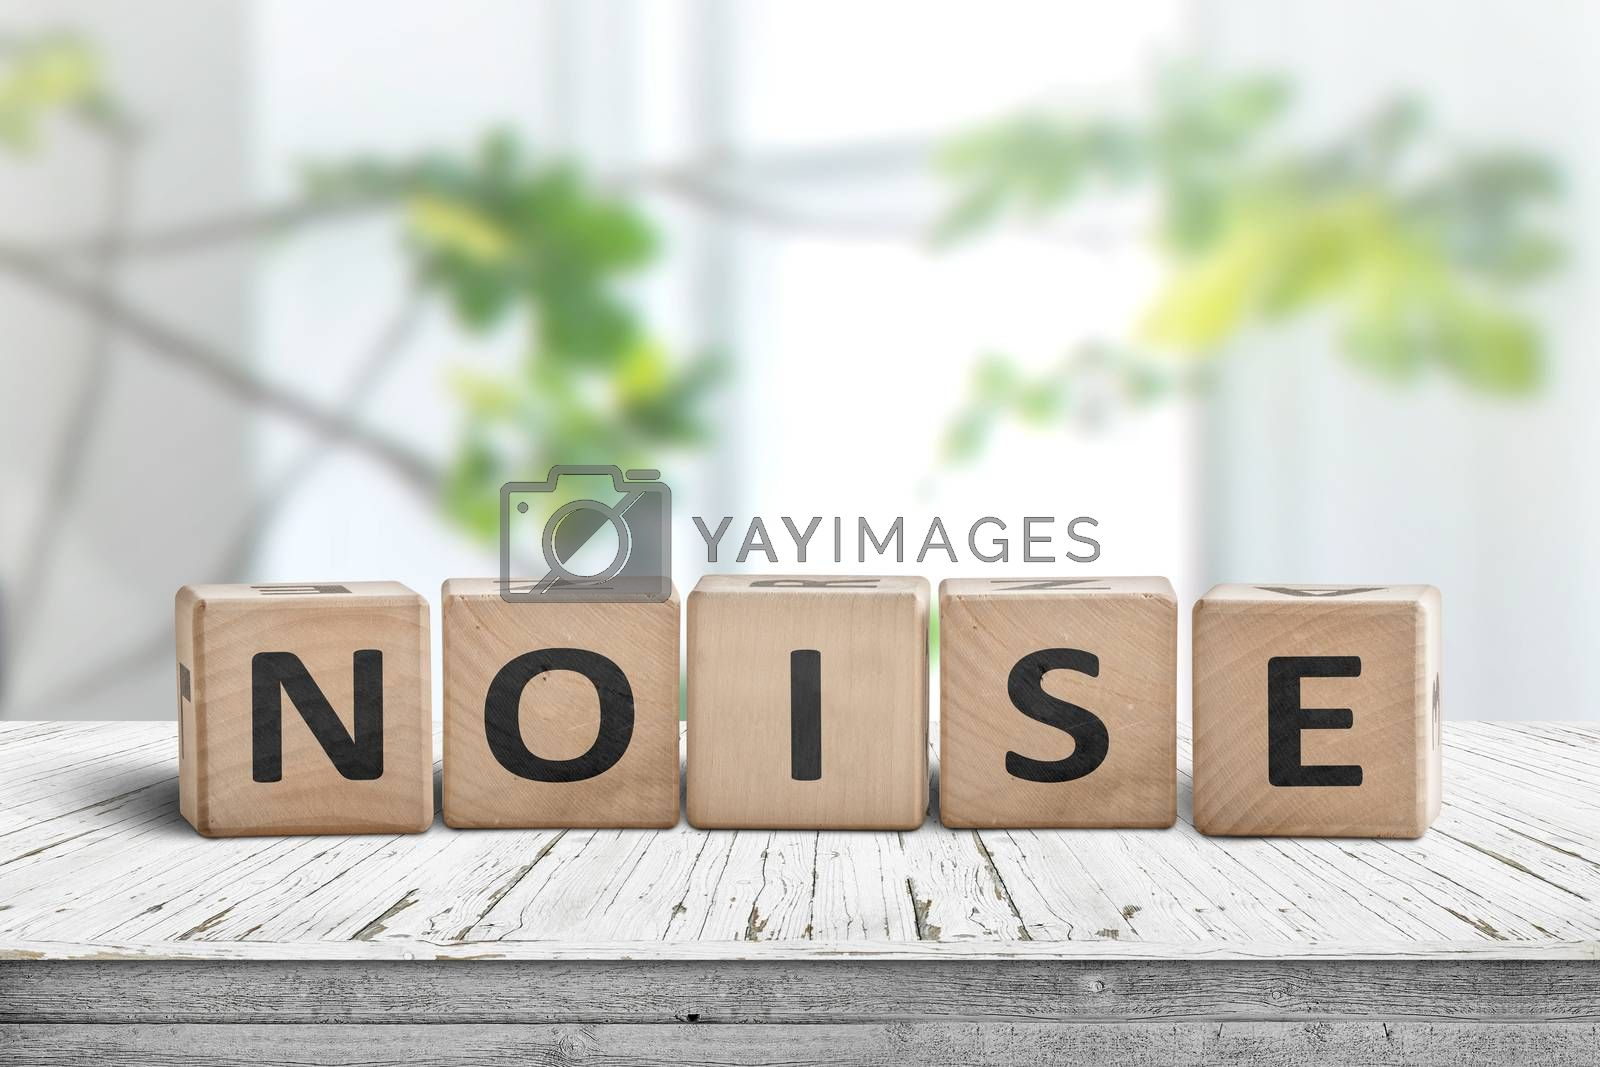 Noise sign made of wood in a bright room with green plants in daylight